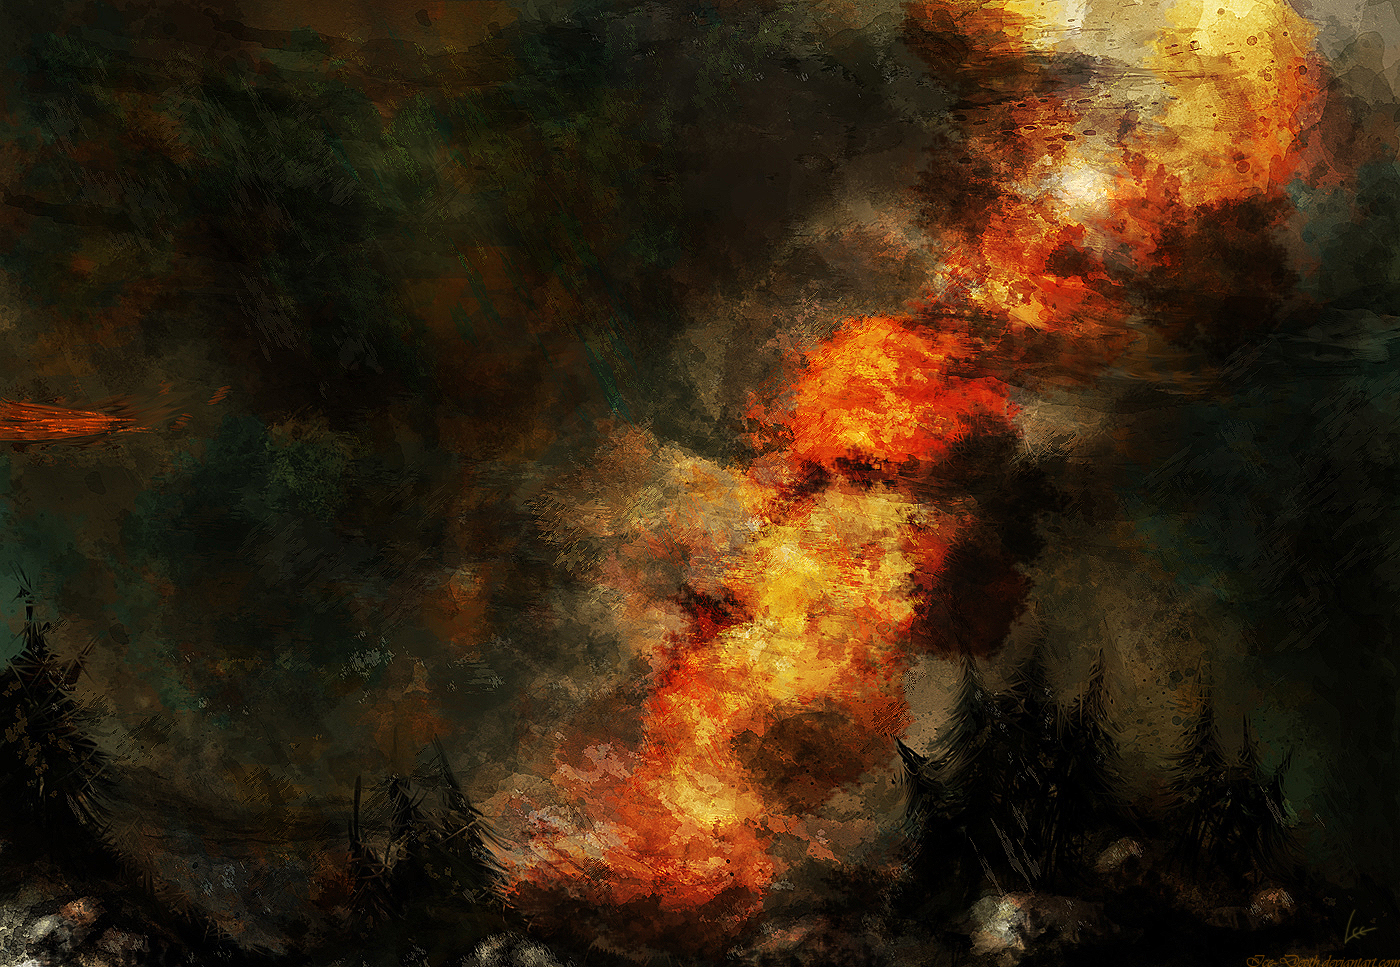 Incendio by MarioTeodosio